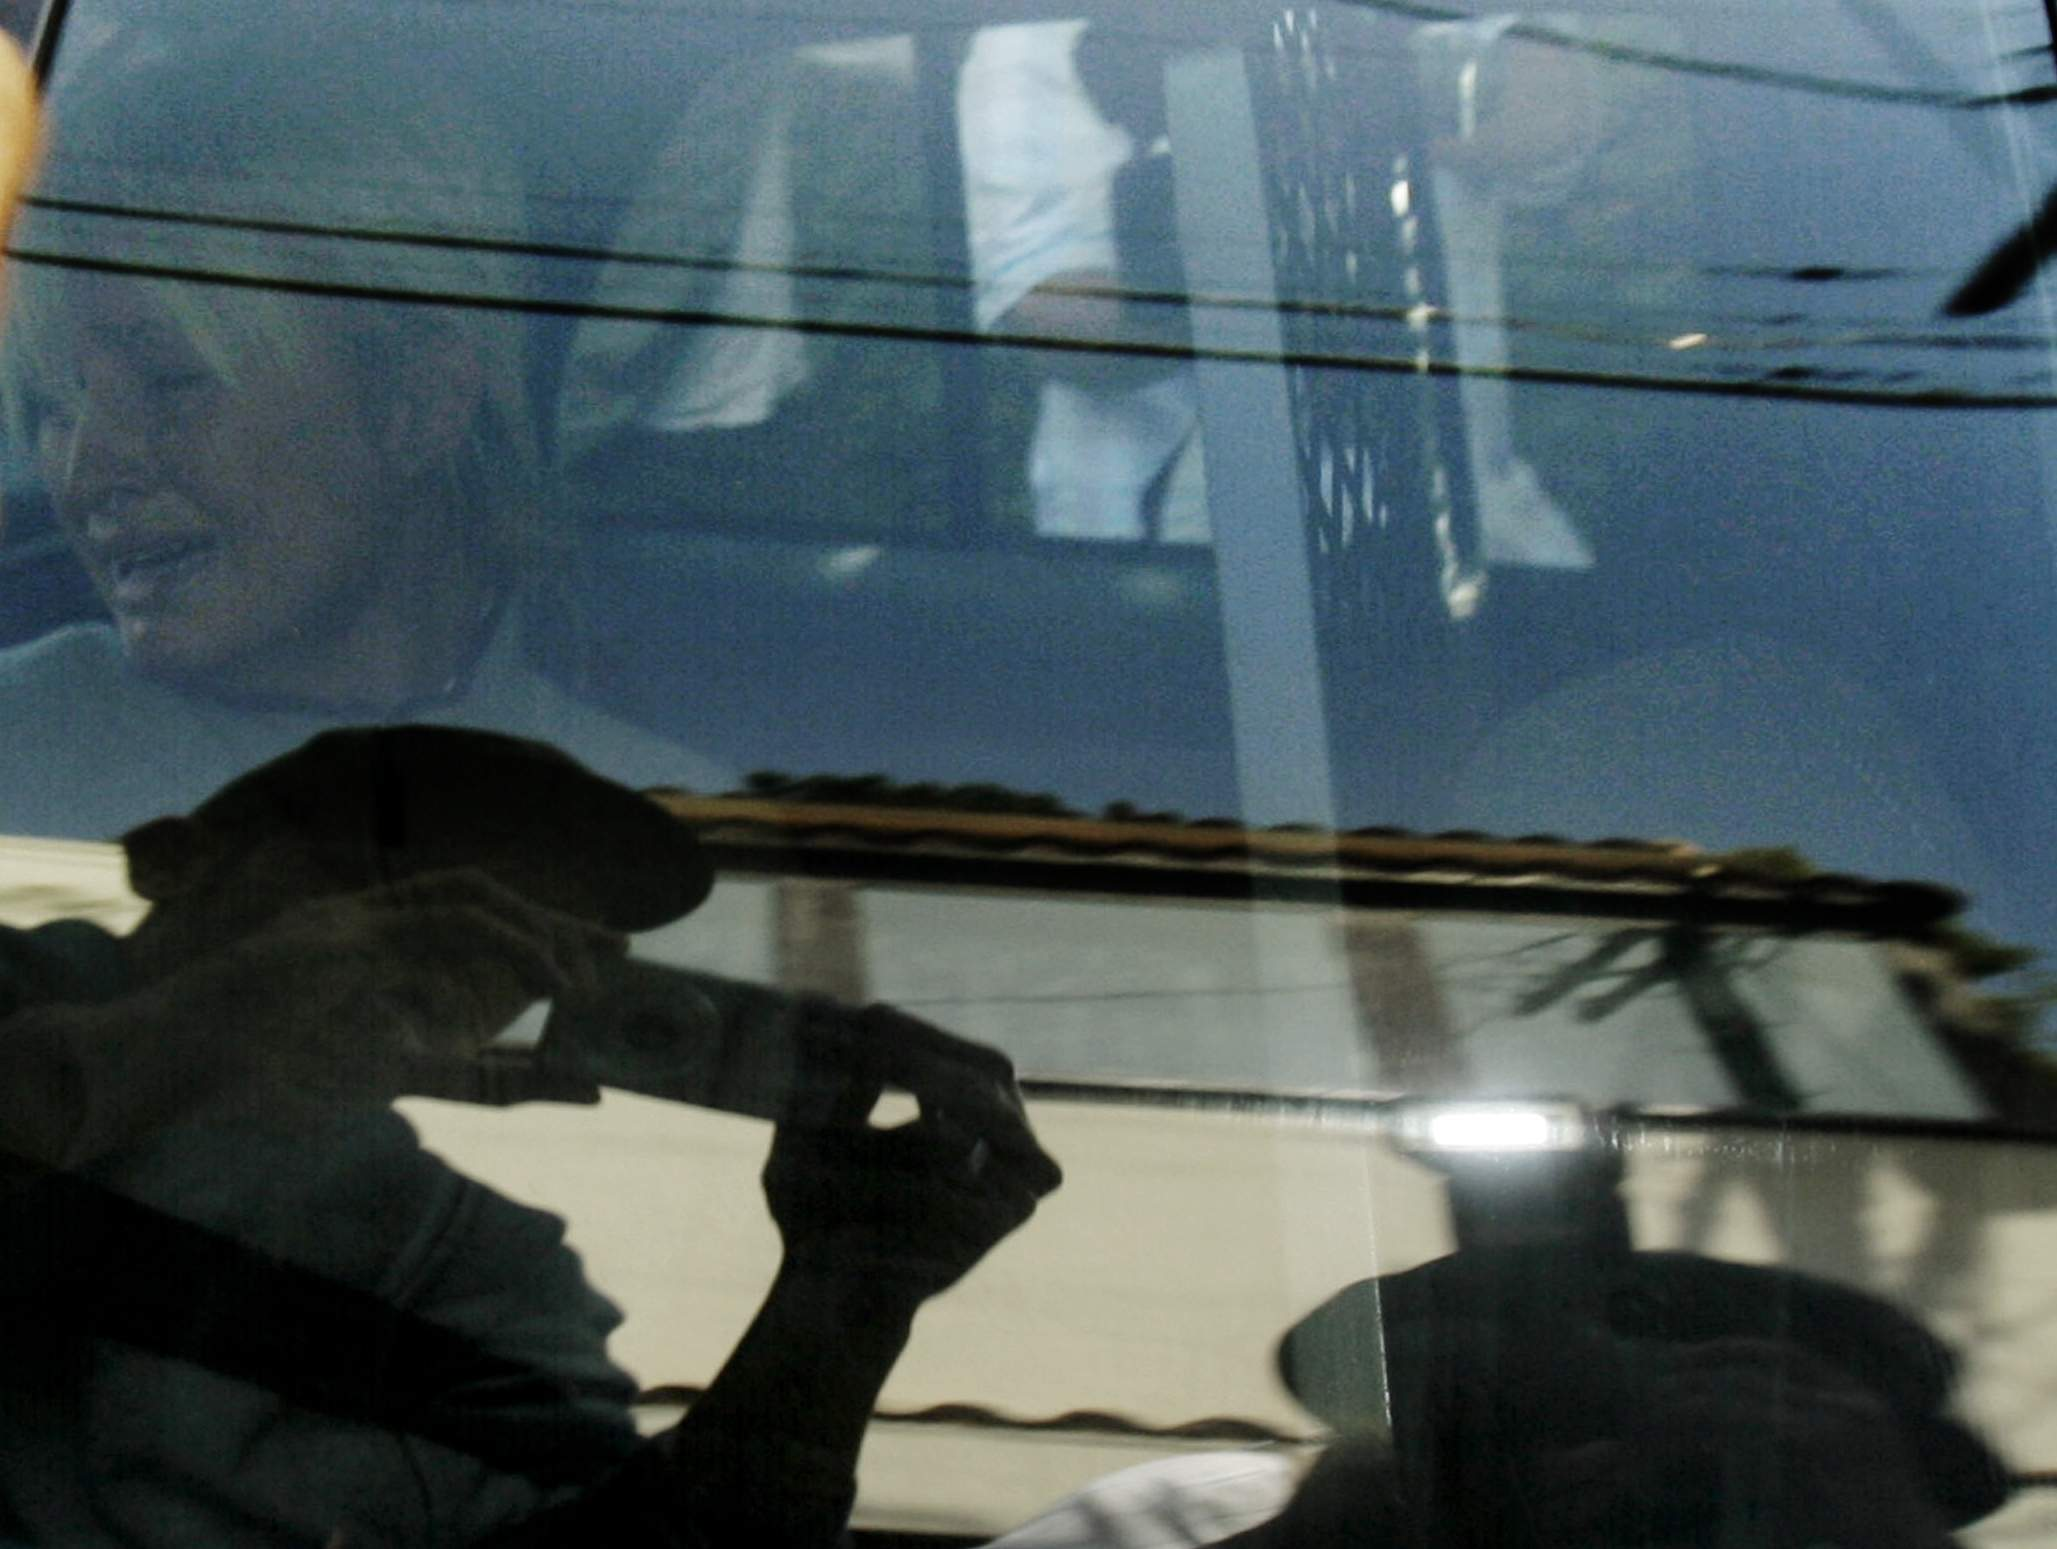 In this Friday, June 8, 2007, file photo, Paris Hilton is transported in a police car from her home to court by the Los Angeles County Sheriff's Department in Los Angeles. As she was taken to jail for driving violations, this photo was made on the 35th anniversary of the day Ut made the 'Napalm Girl' picture in Vietnam. NICK UT/THE ASSOCIATED PRESS